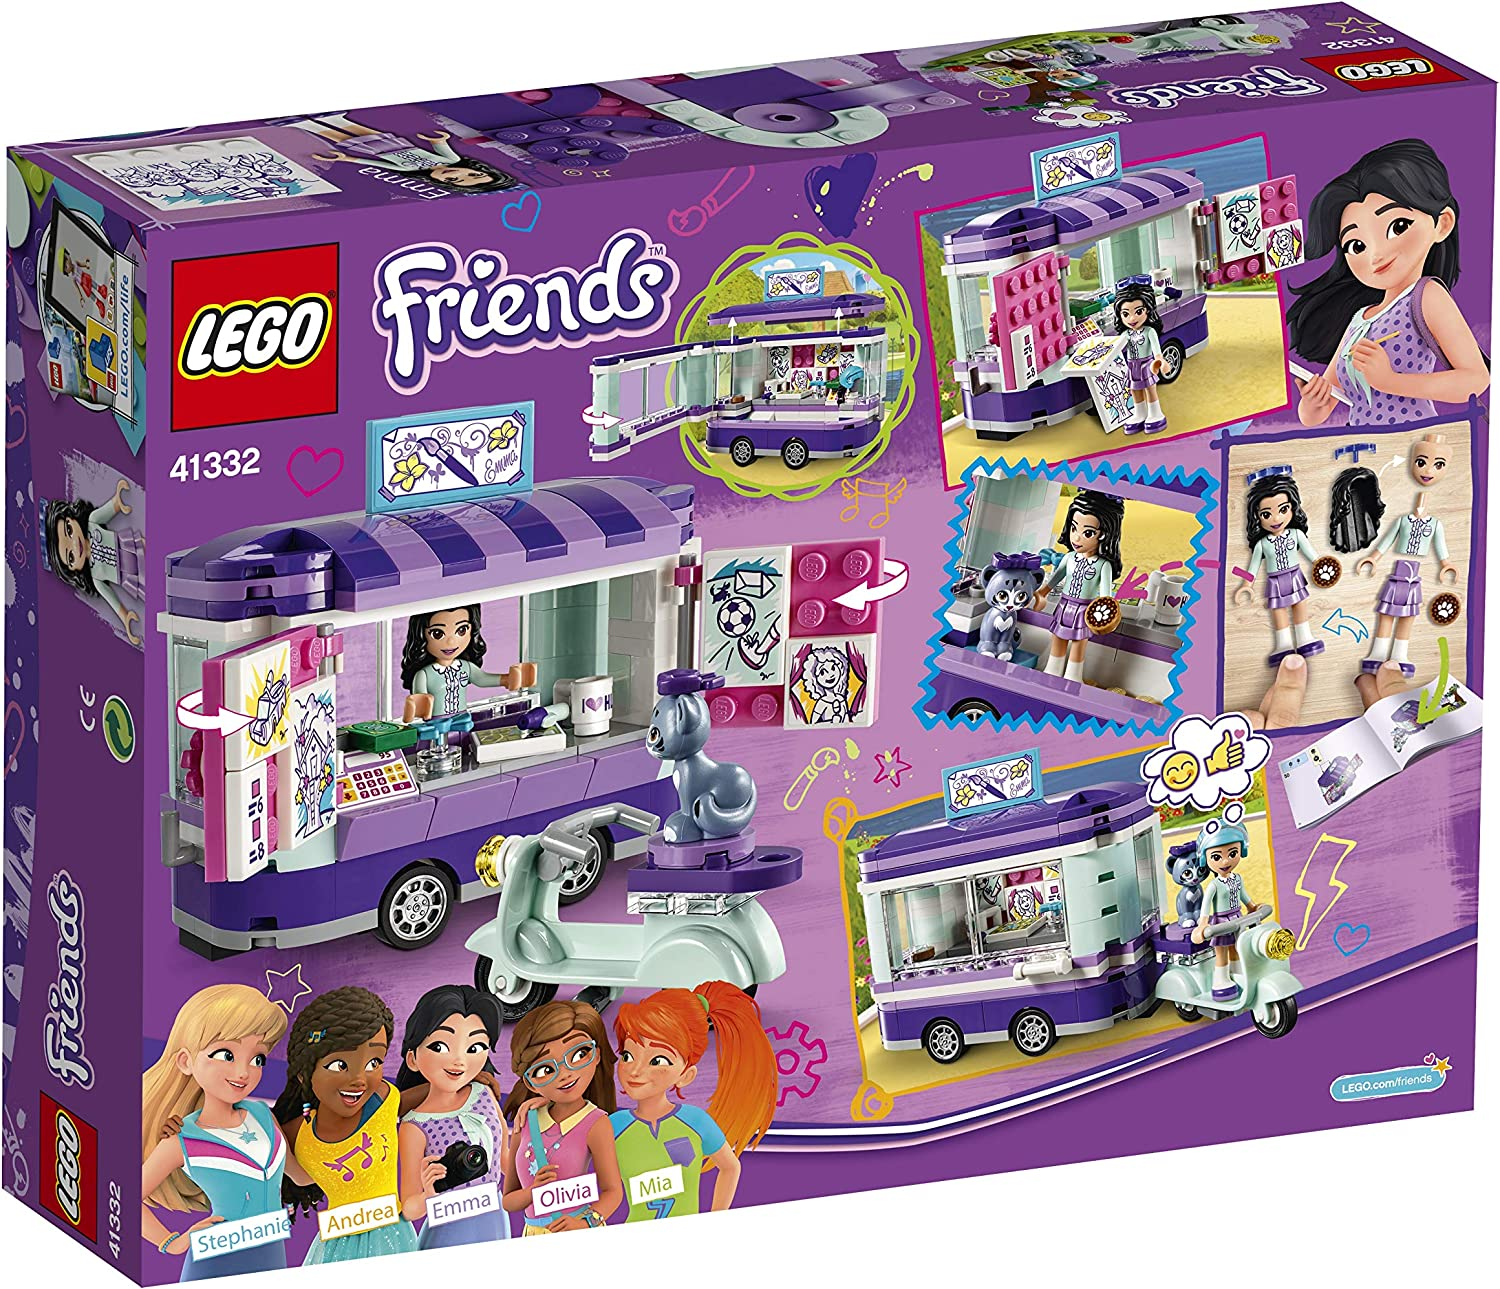 Build and Play Fu LEGO 41332 Friends Heartlake Emma's Art Stand Trailer Playset